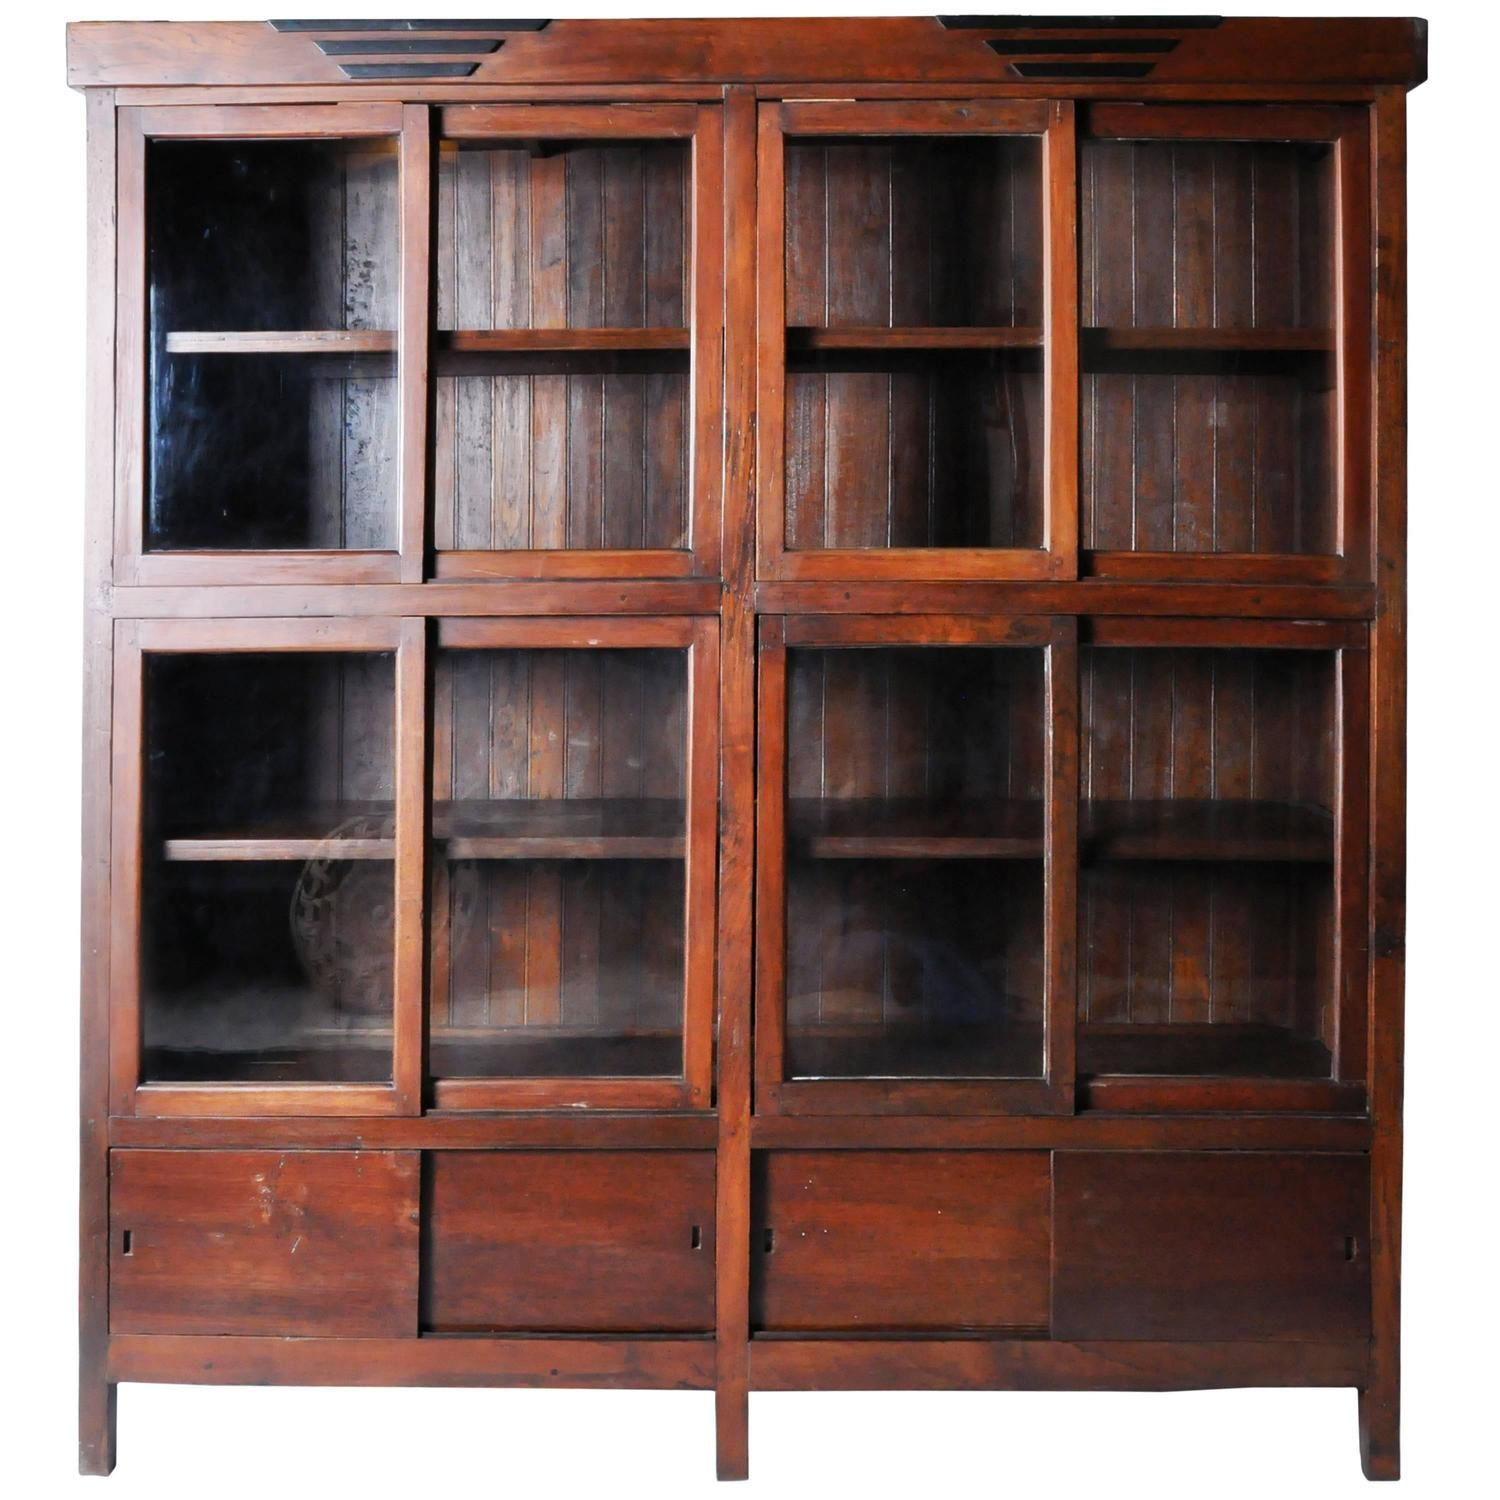 british colonial style bookcase see more antique and modern furniture at https www 1stdibs com furniture asian art furniture furniture